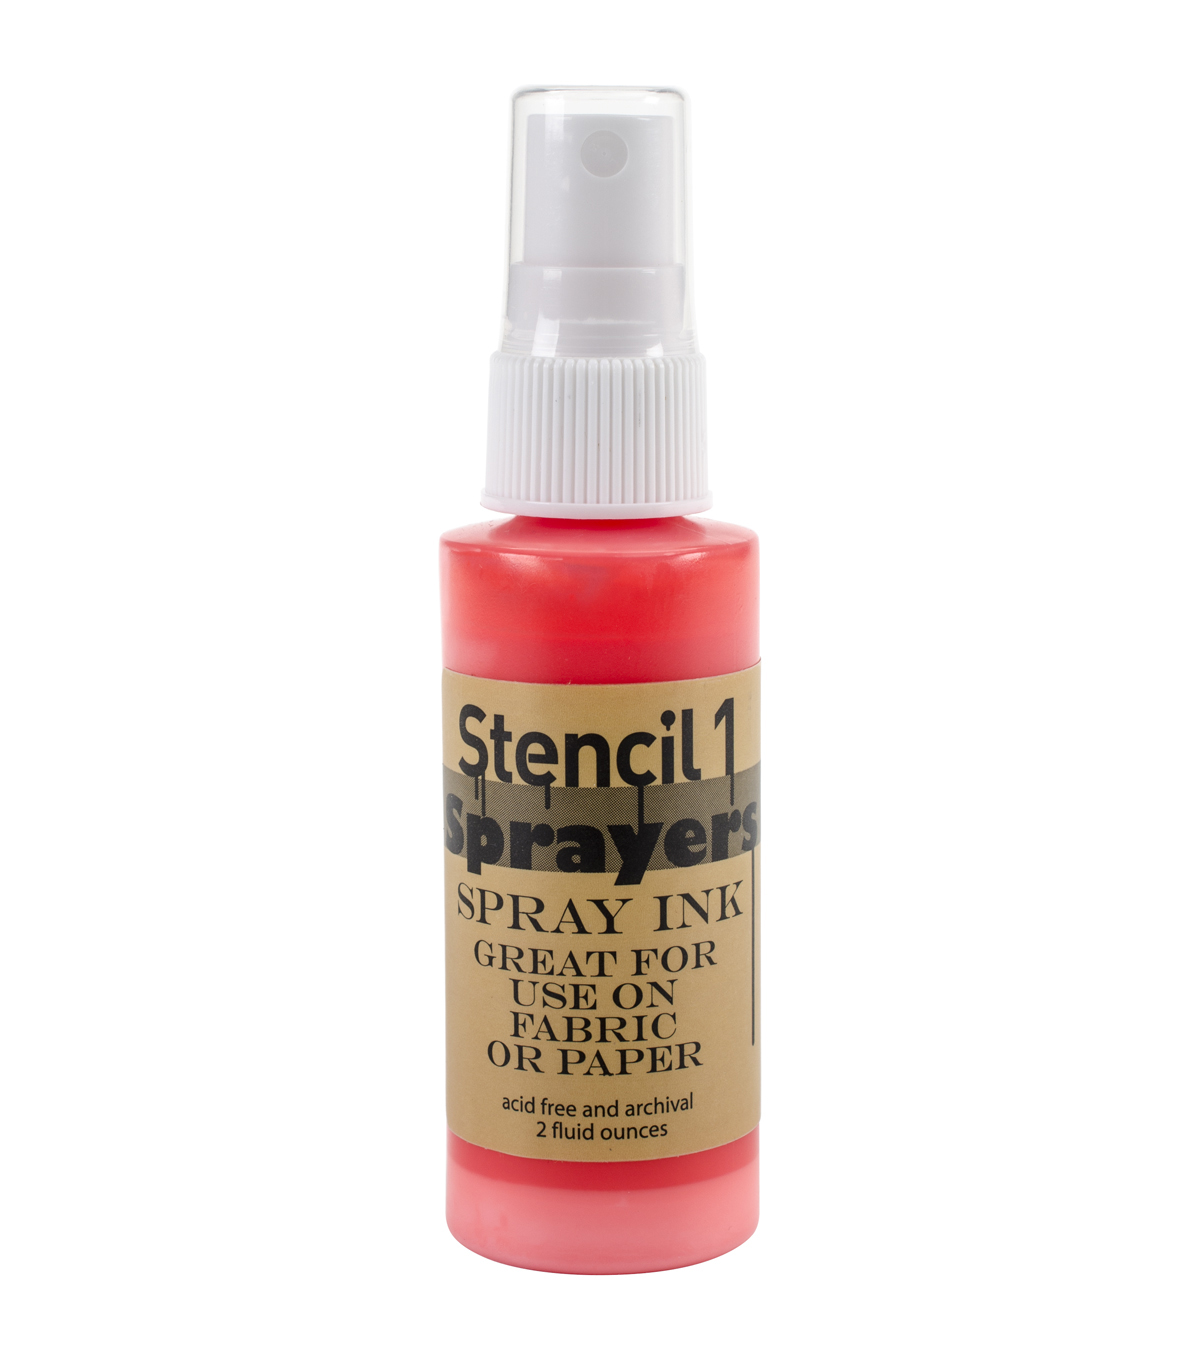 Stencil1 Sprayers Day-Glow Colors Spray Ink 2oz